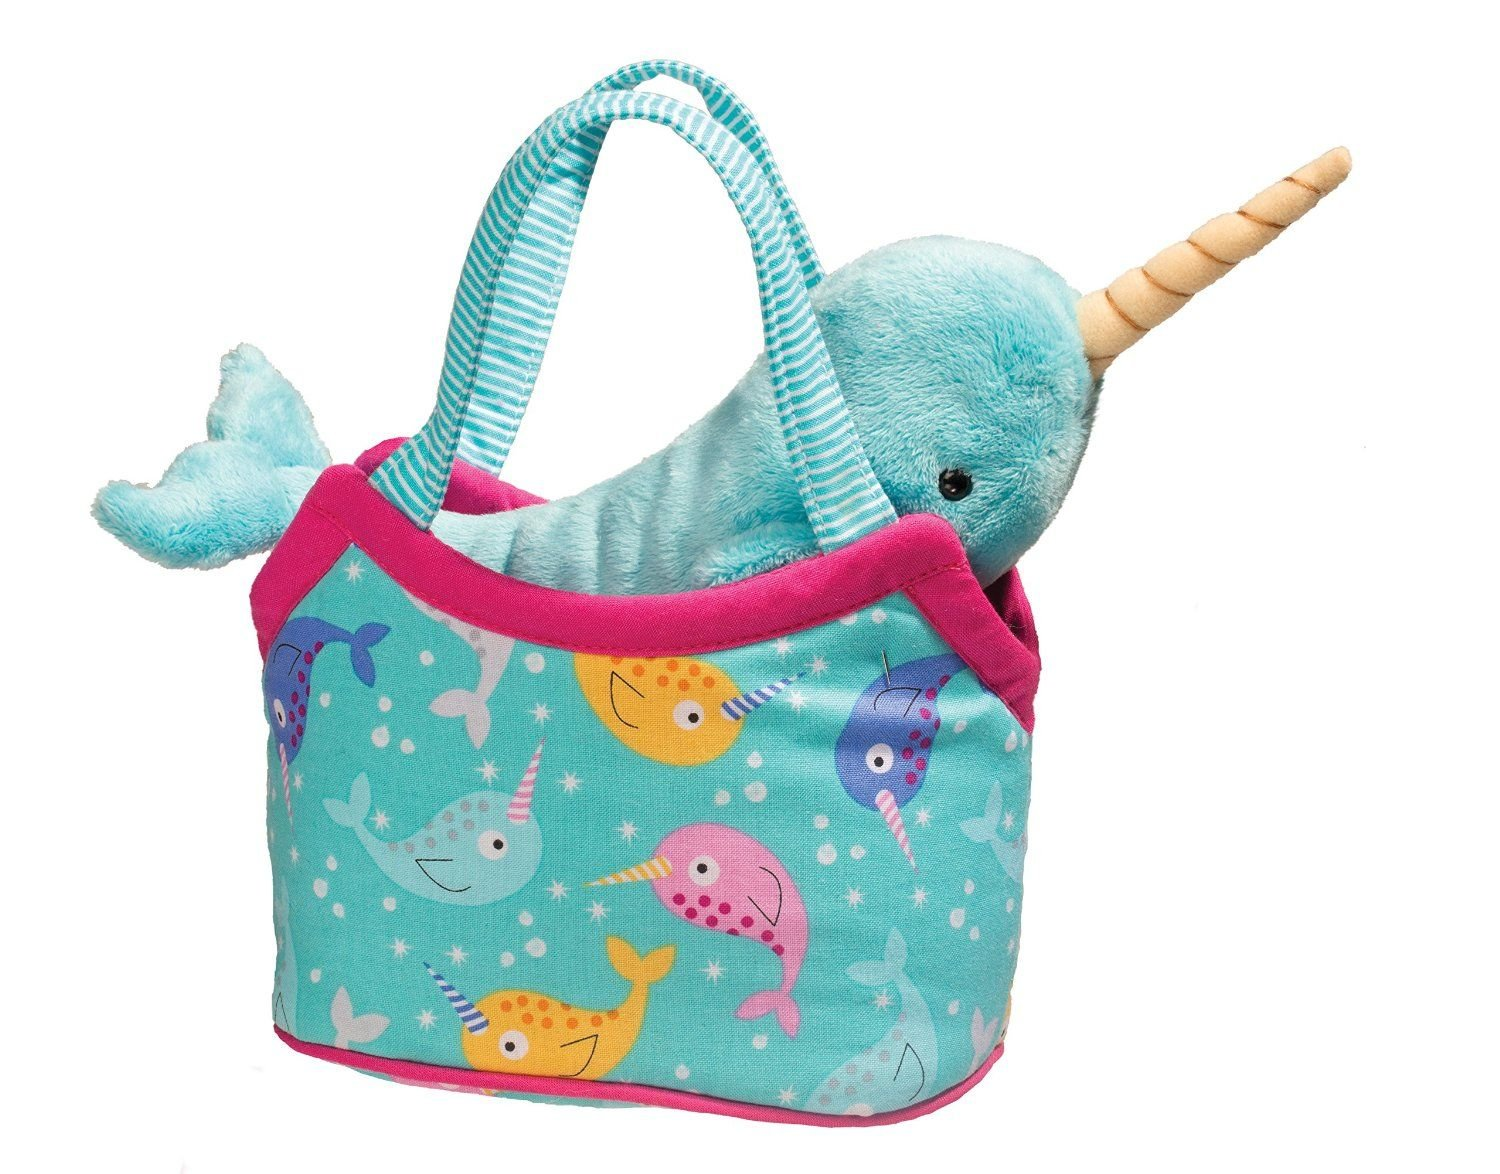 Narwhal Sassy Pet and Purse by Douglas